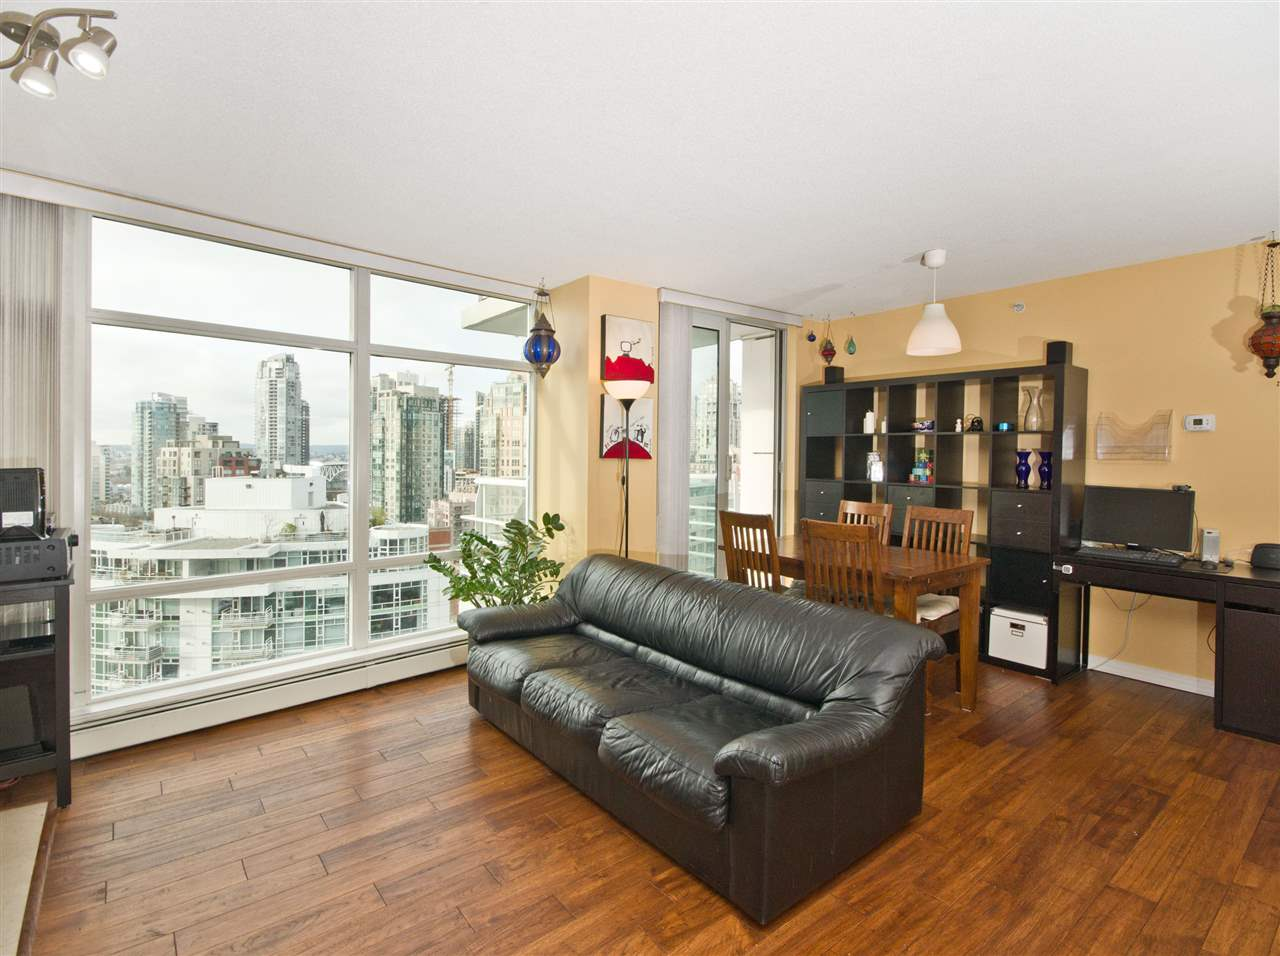 "Photo 2: 2108 198 AQUARIUS Mews in Vancouver: Yaletown Condo for sale in ""THE AQUARIUS"" (Vancouver West)  : MLS® # R2125703"